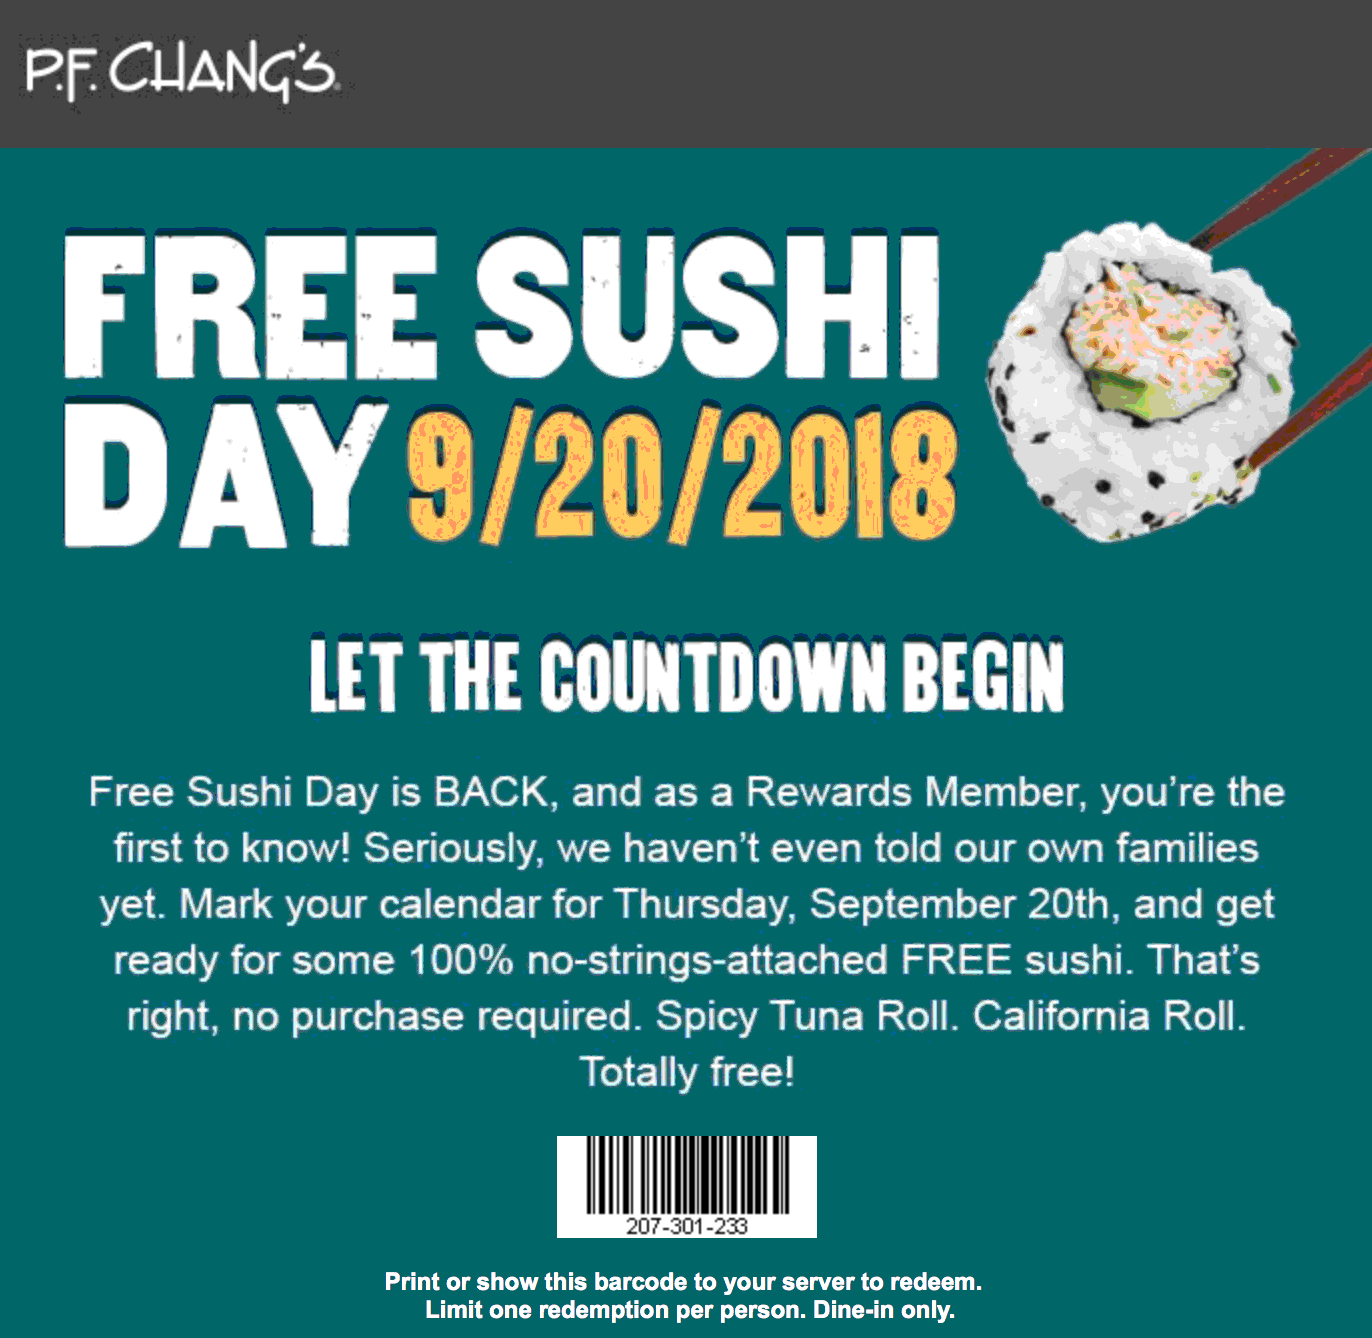 P.F. Changs Coupon June 2020 Free sushi day Thursday at P.F. Changs restaurants